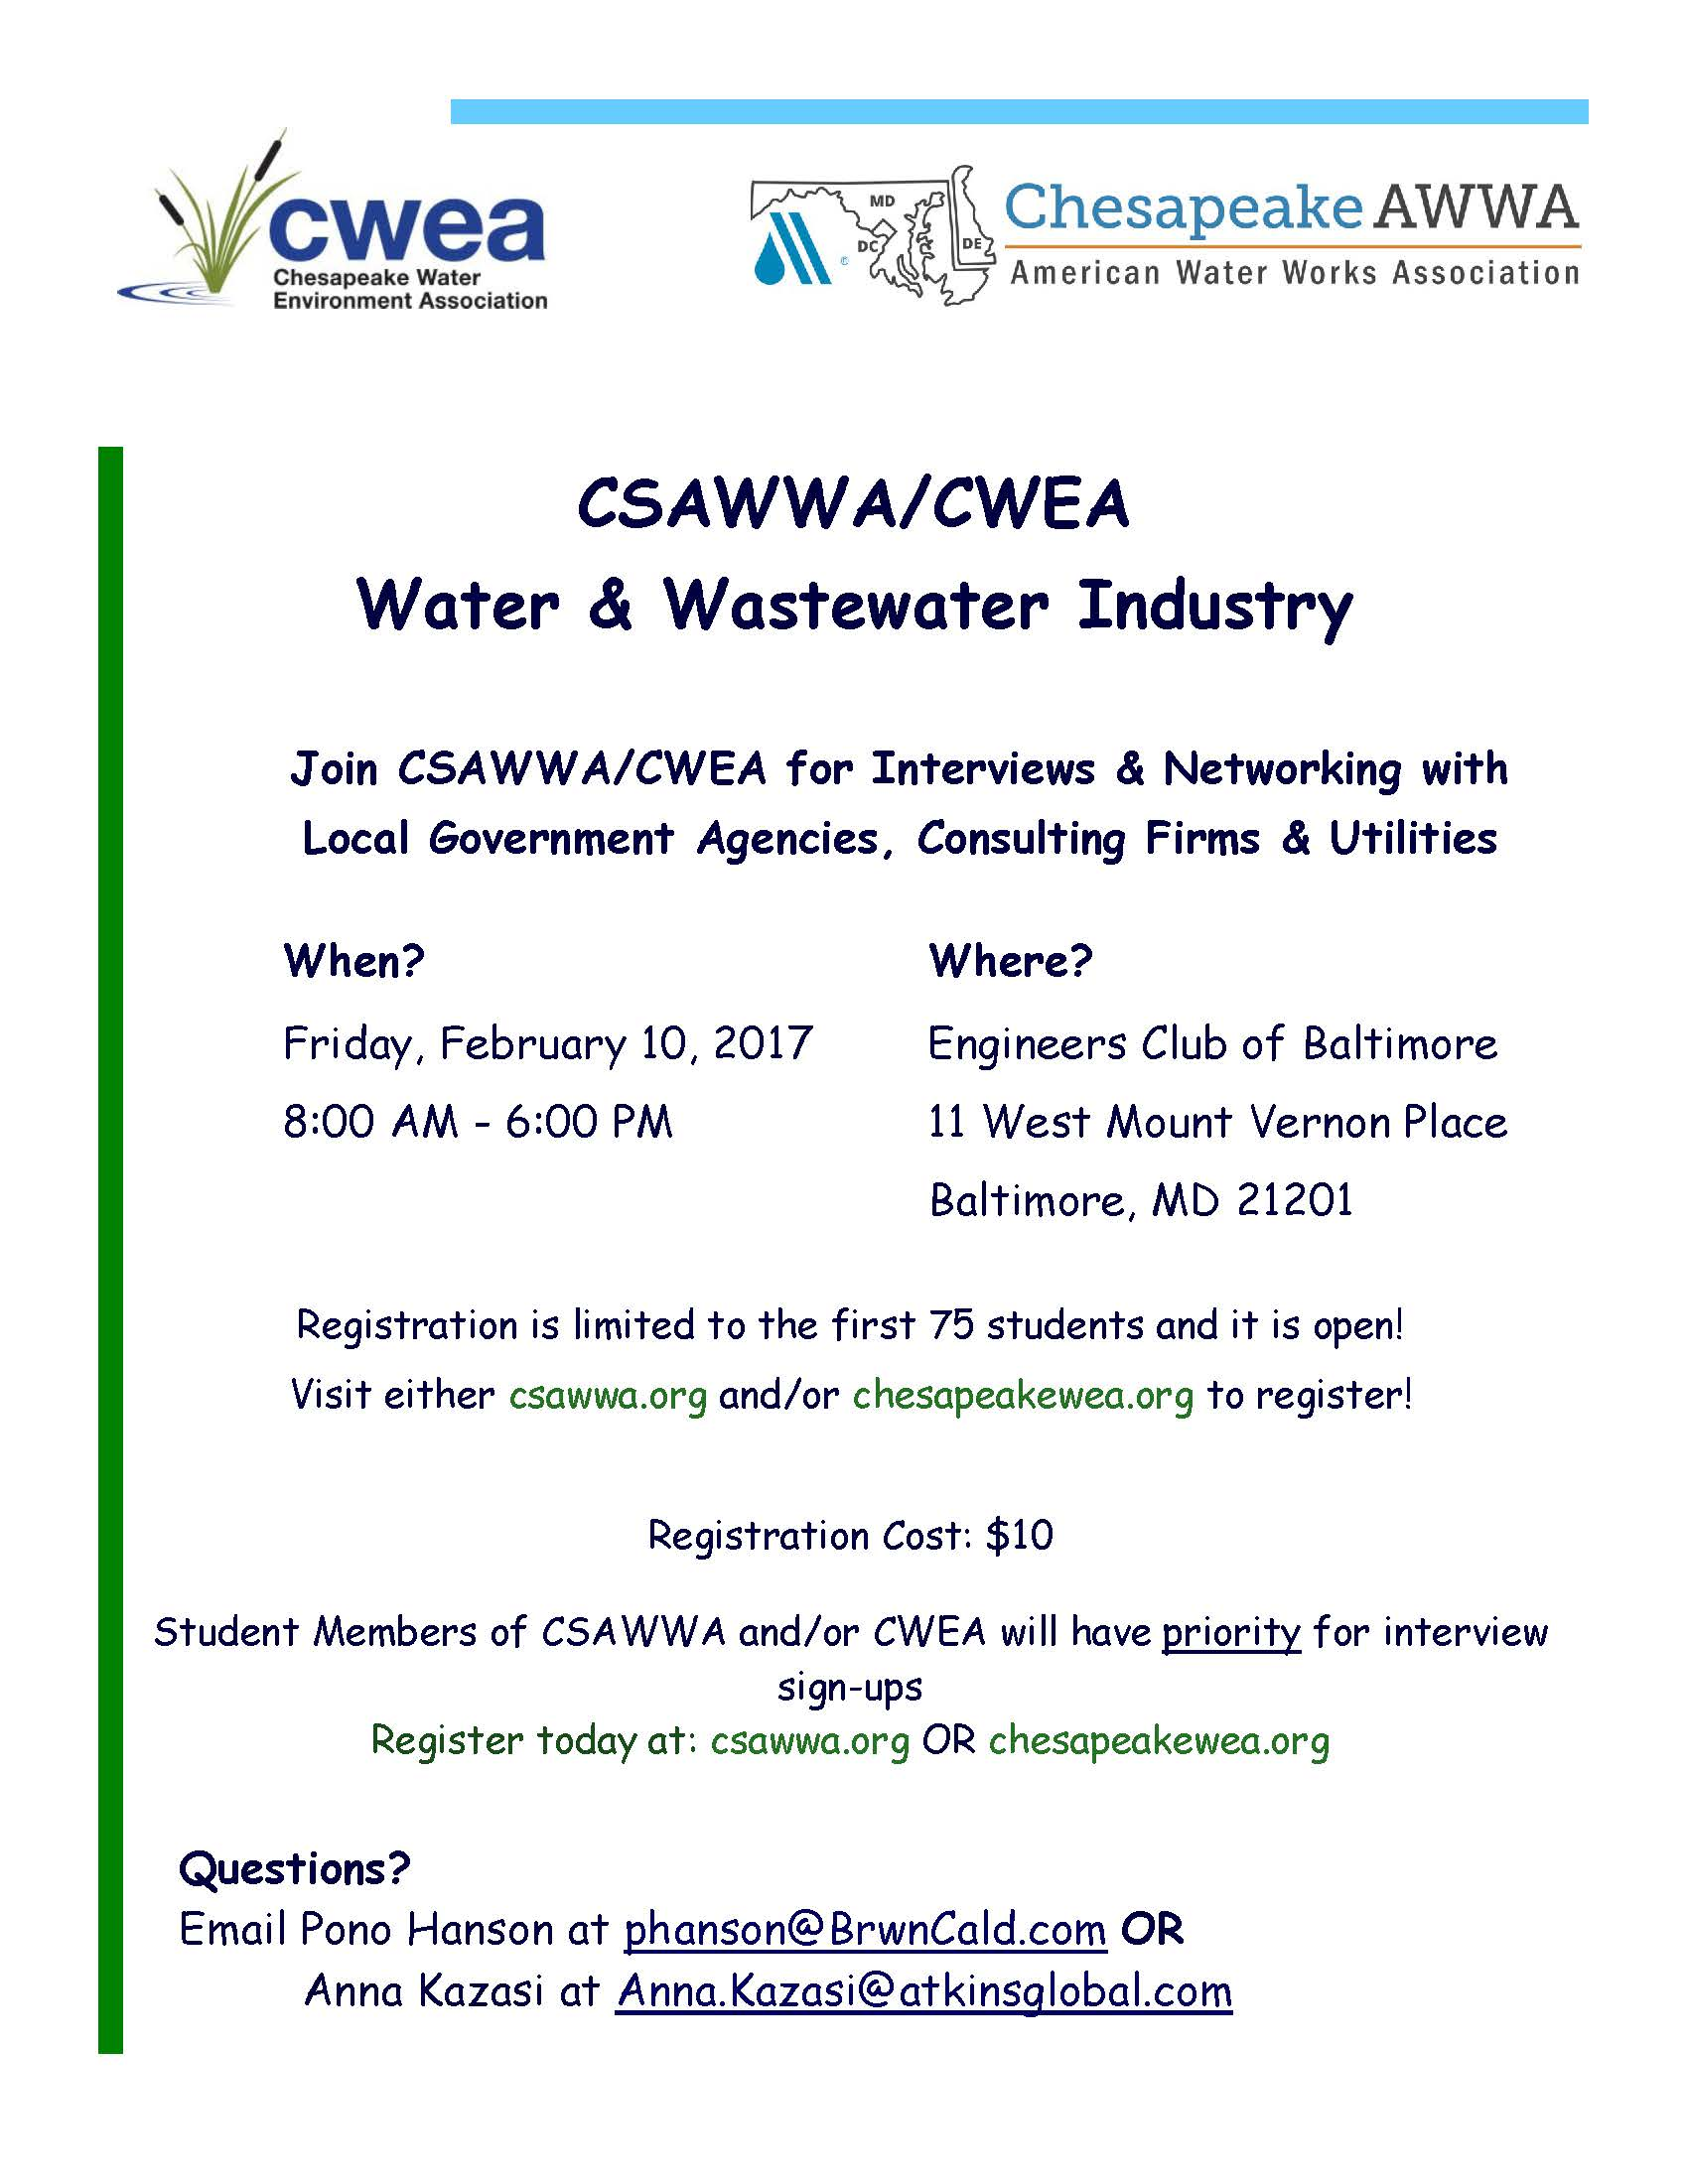 water-and-wastewater-event-flyer-students-1